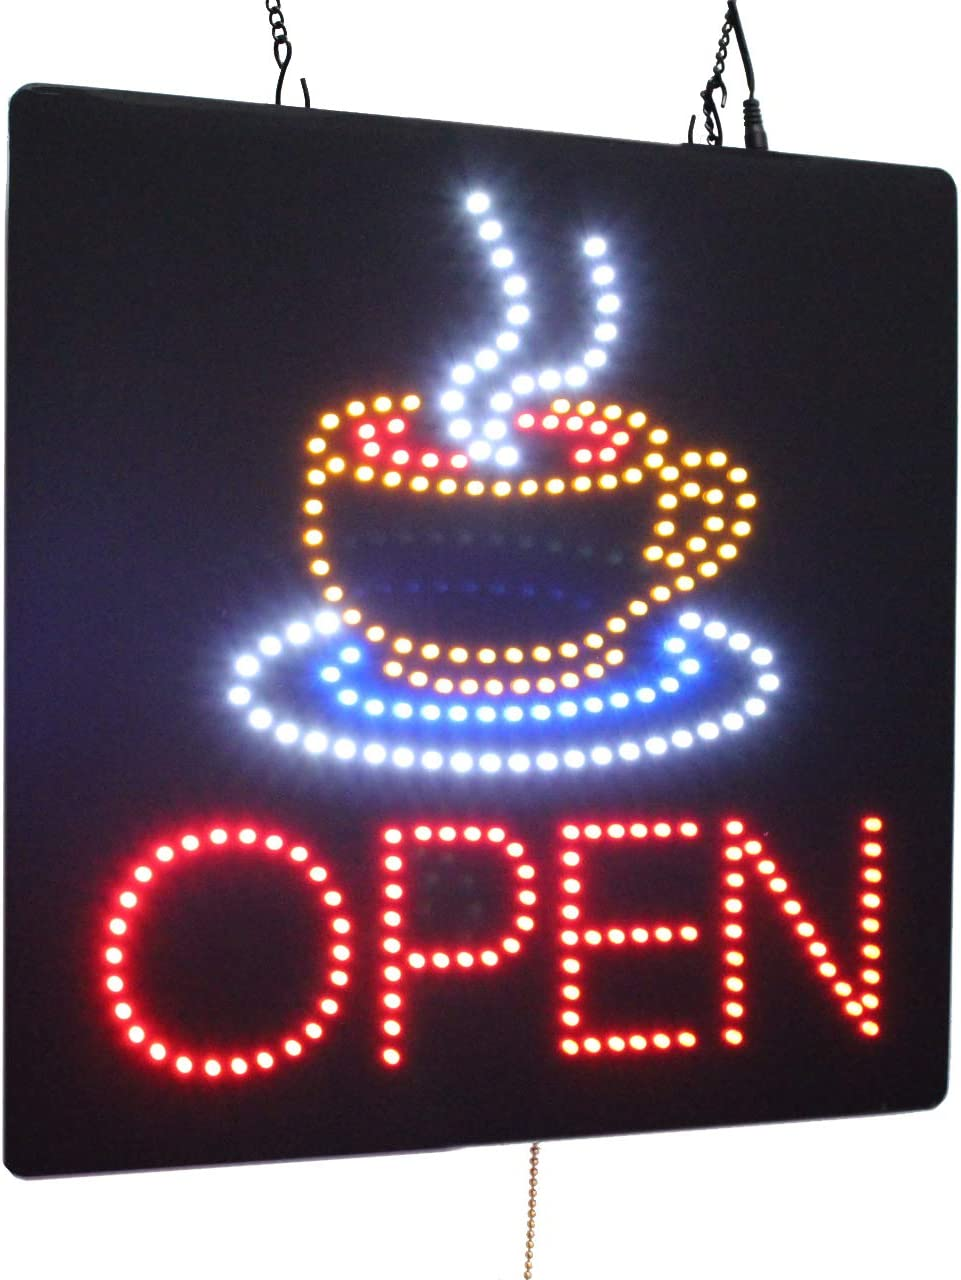 Open with a Coffee Mug Sign, TOPKING Signage, LED Neon Open, Store, Window, Shop, Business, Display, Grand Opening Gift